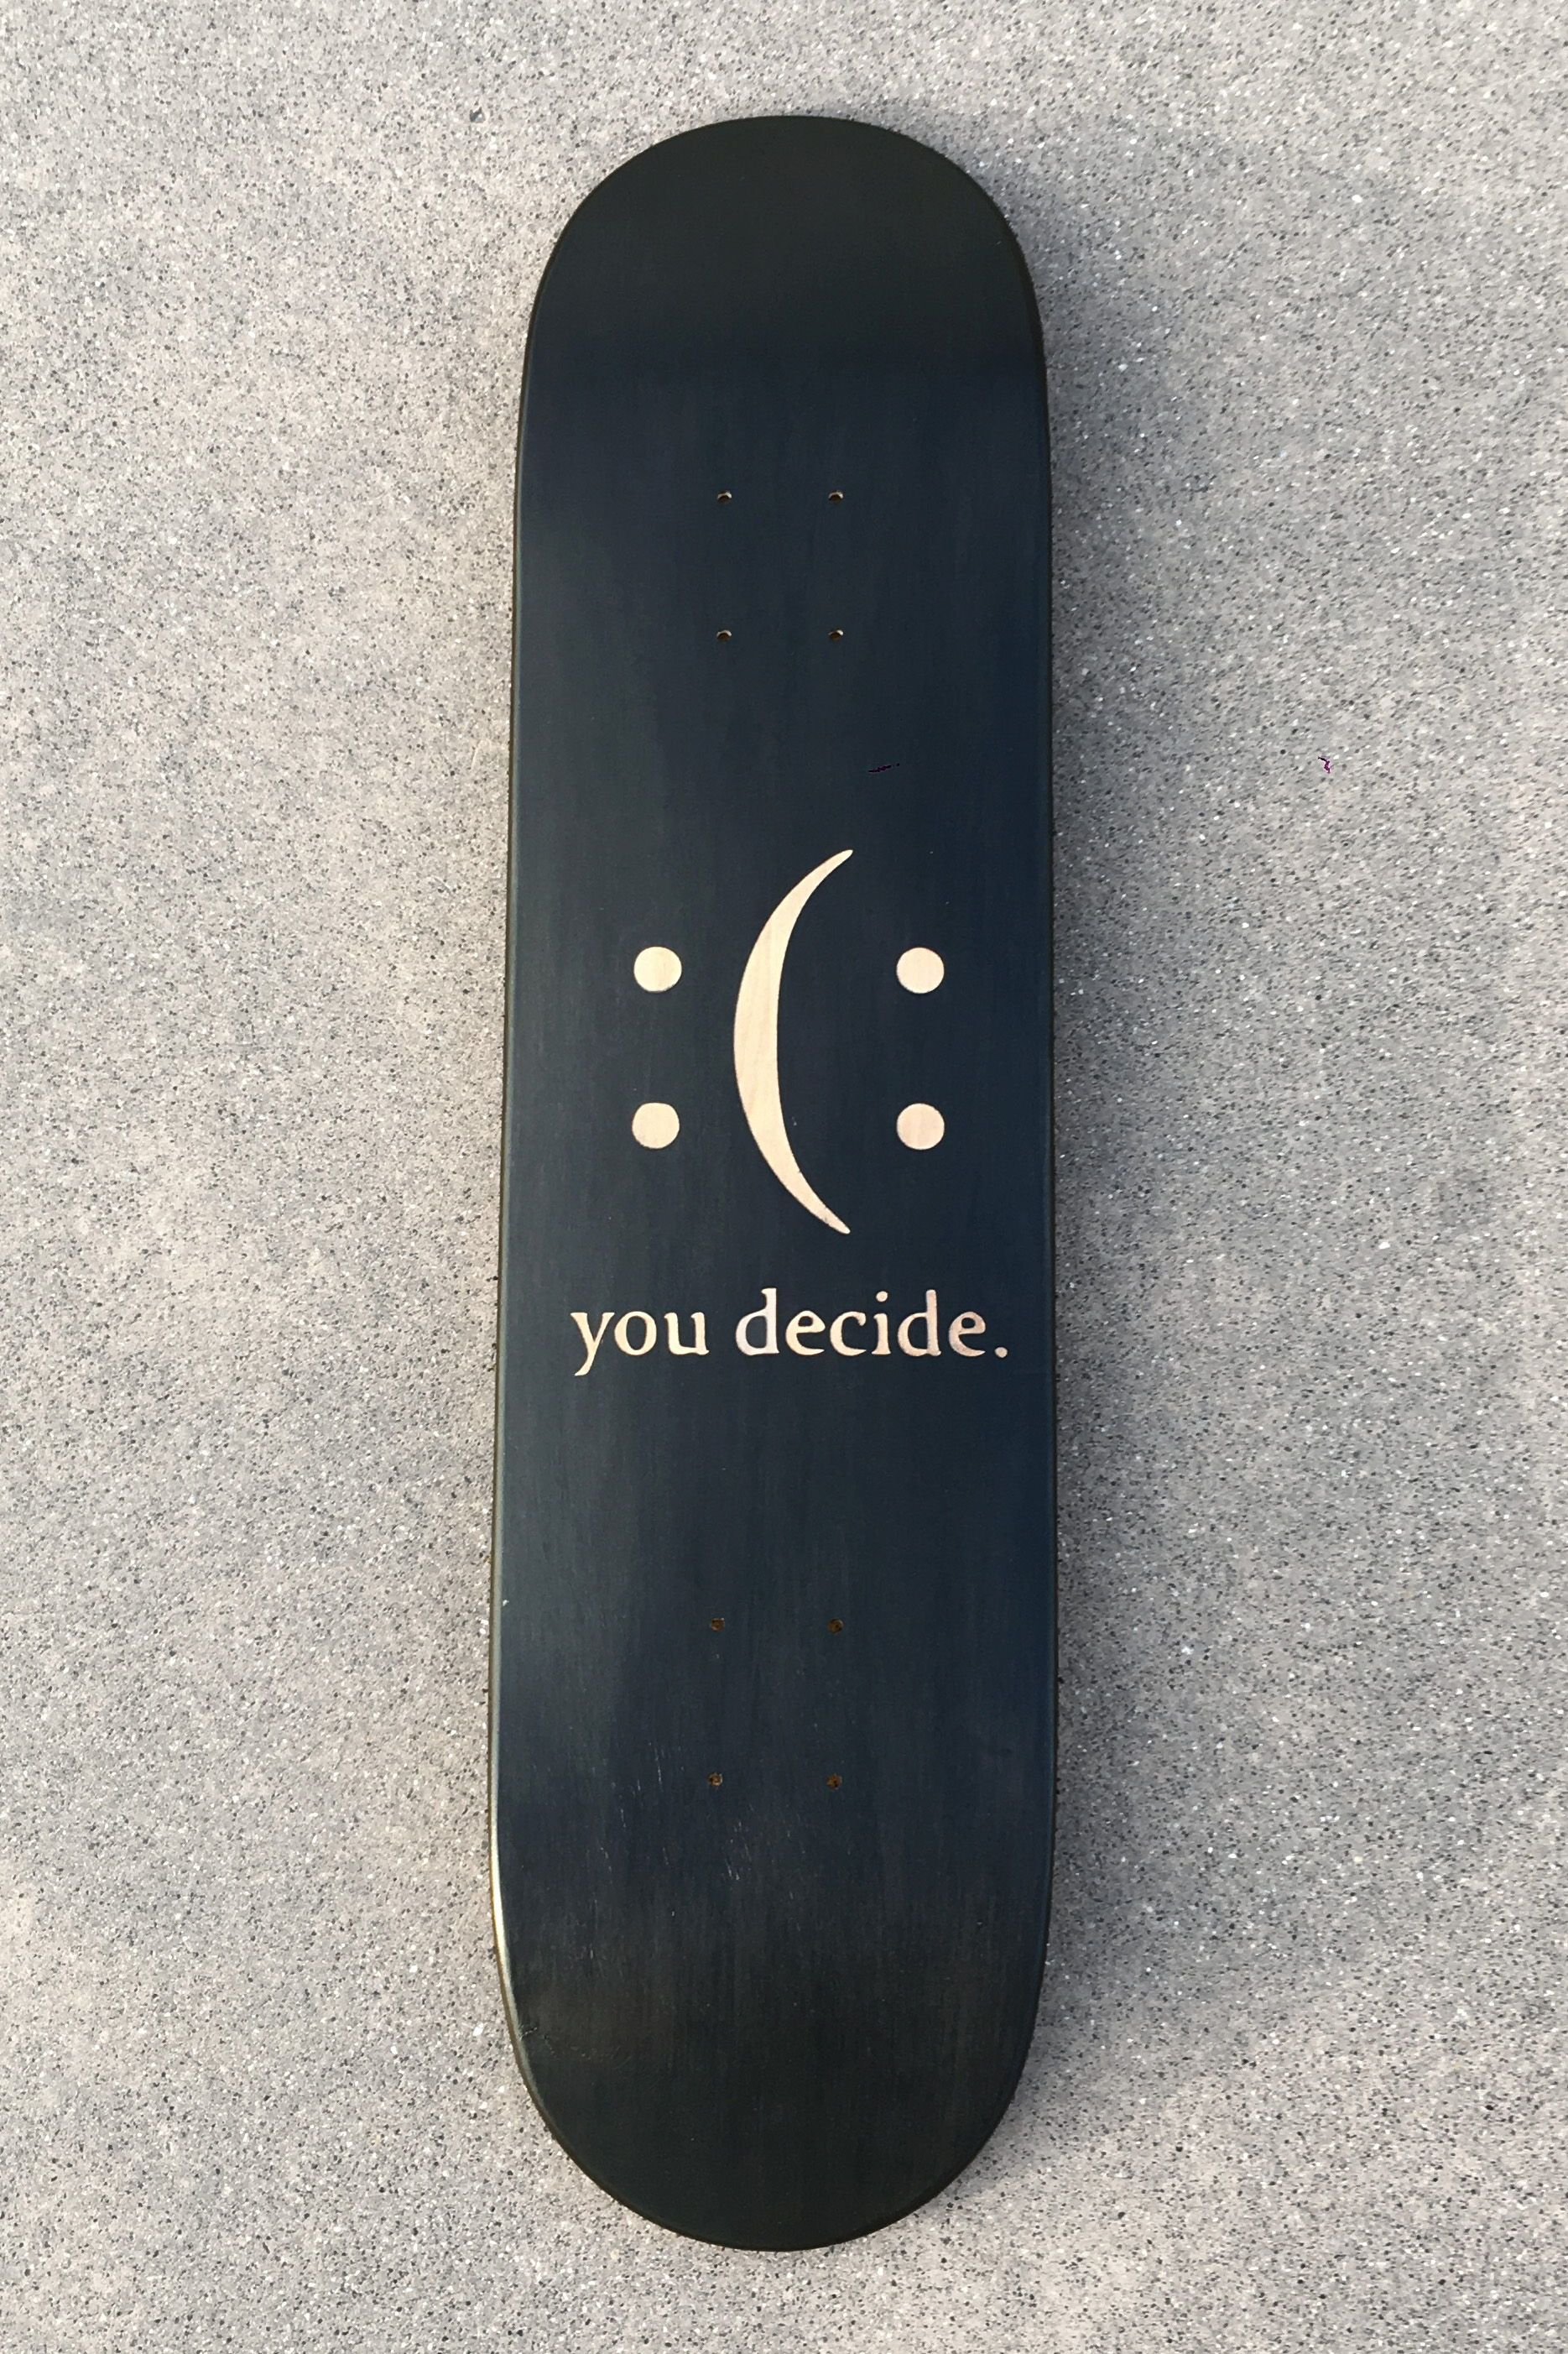 Custom Skateboard Made With Laser Engraving And Our Online Editor Try It For Freely Skateboard Deck Art Skateboard Design Painted Skateboard